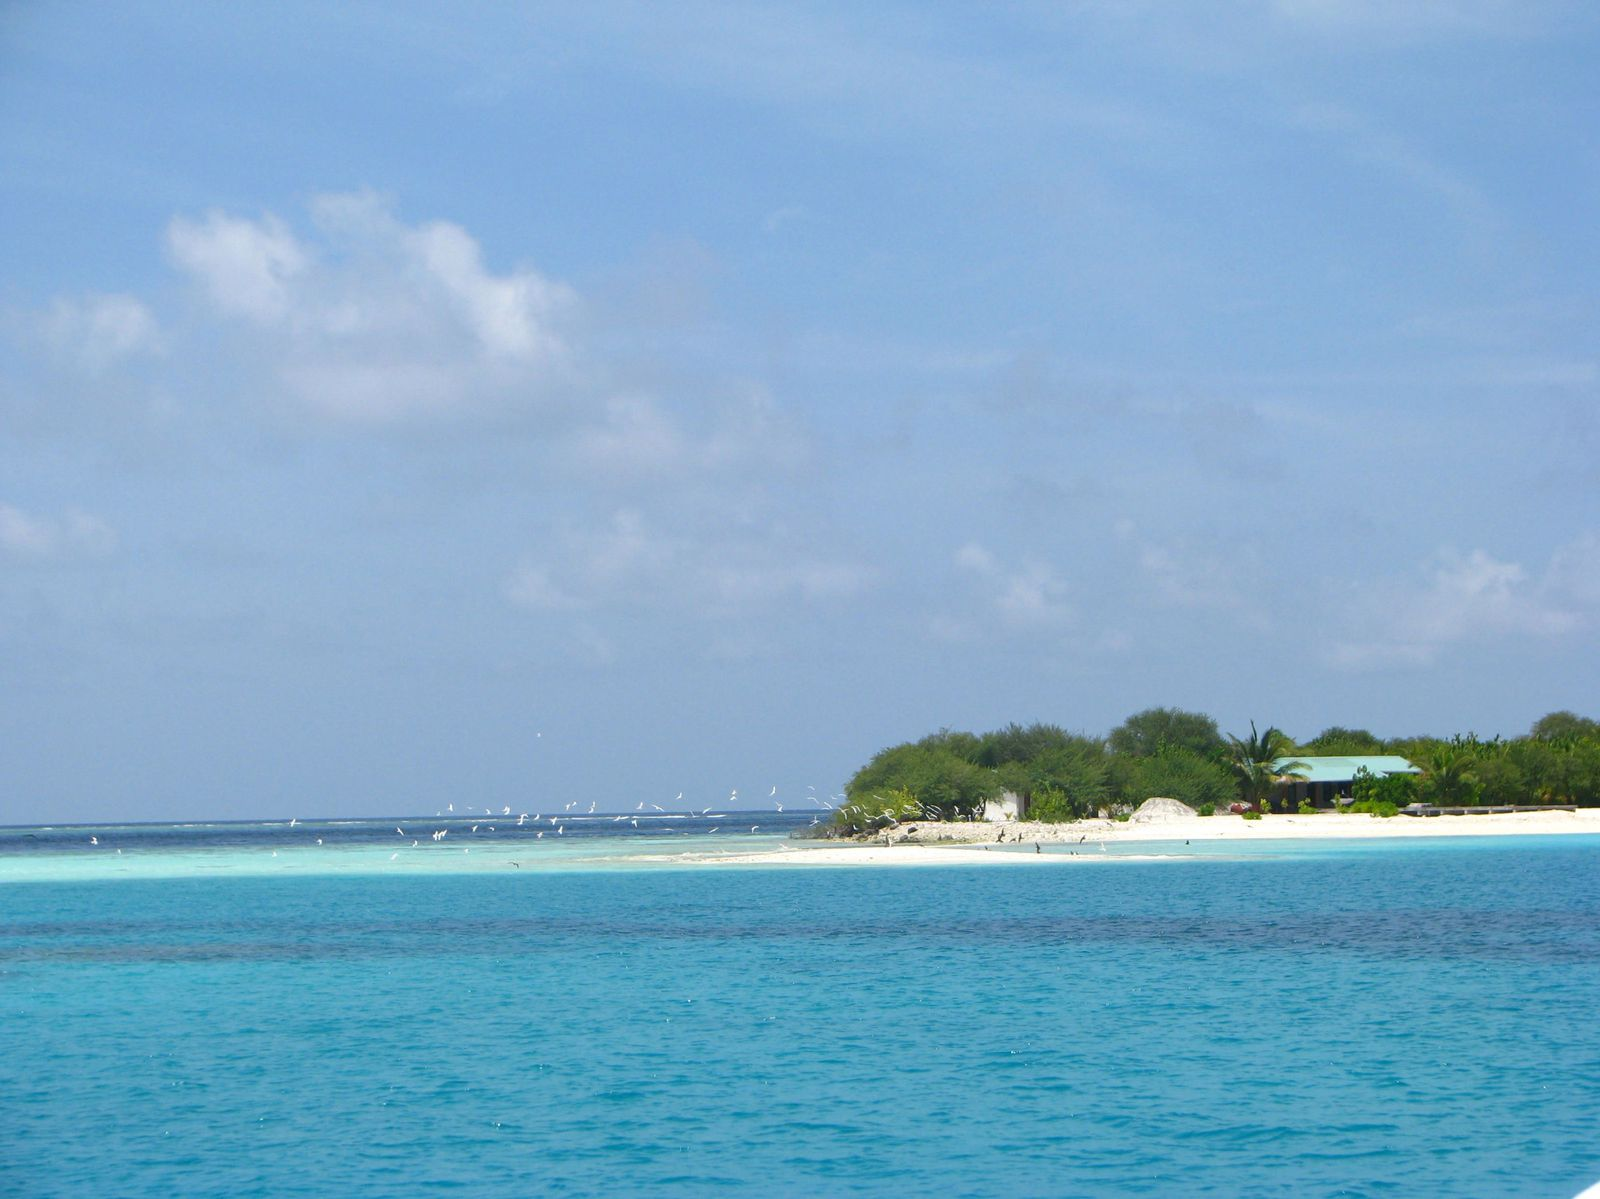 Maldives - qques excursions